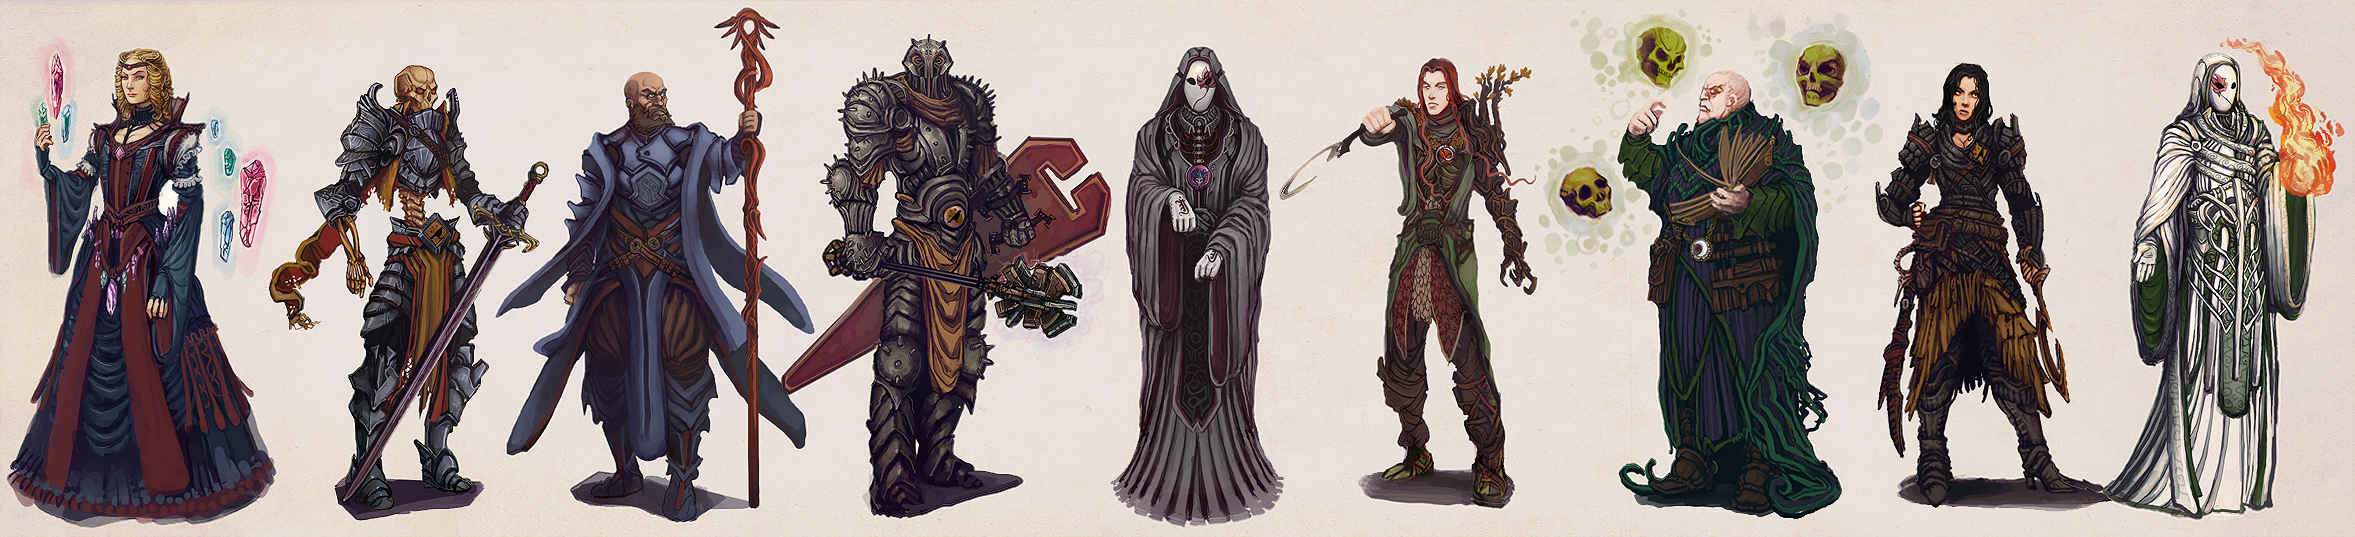 Character Design Lineup : Chronicles of jinx character design lineup by art